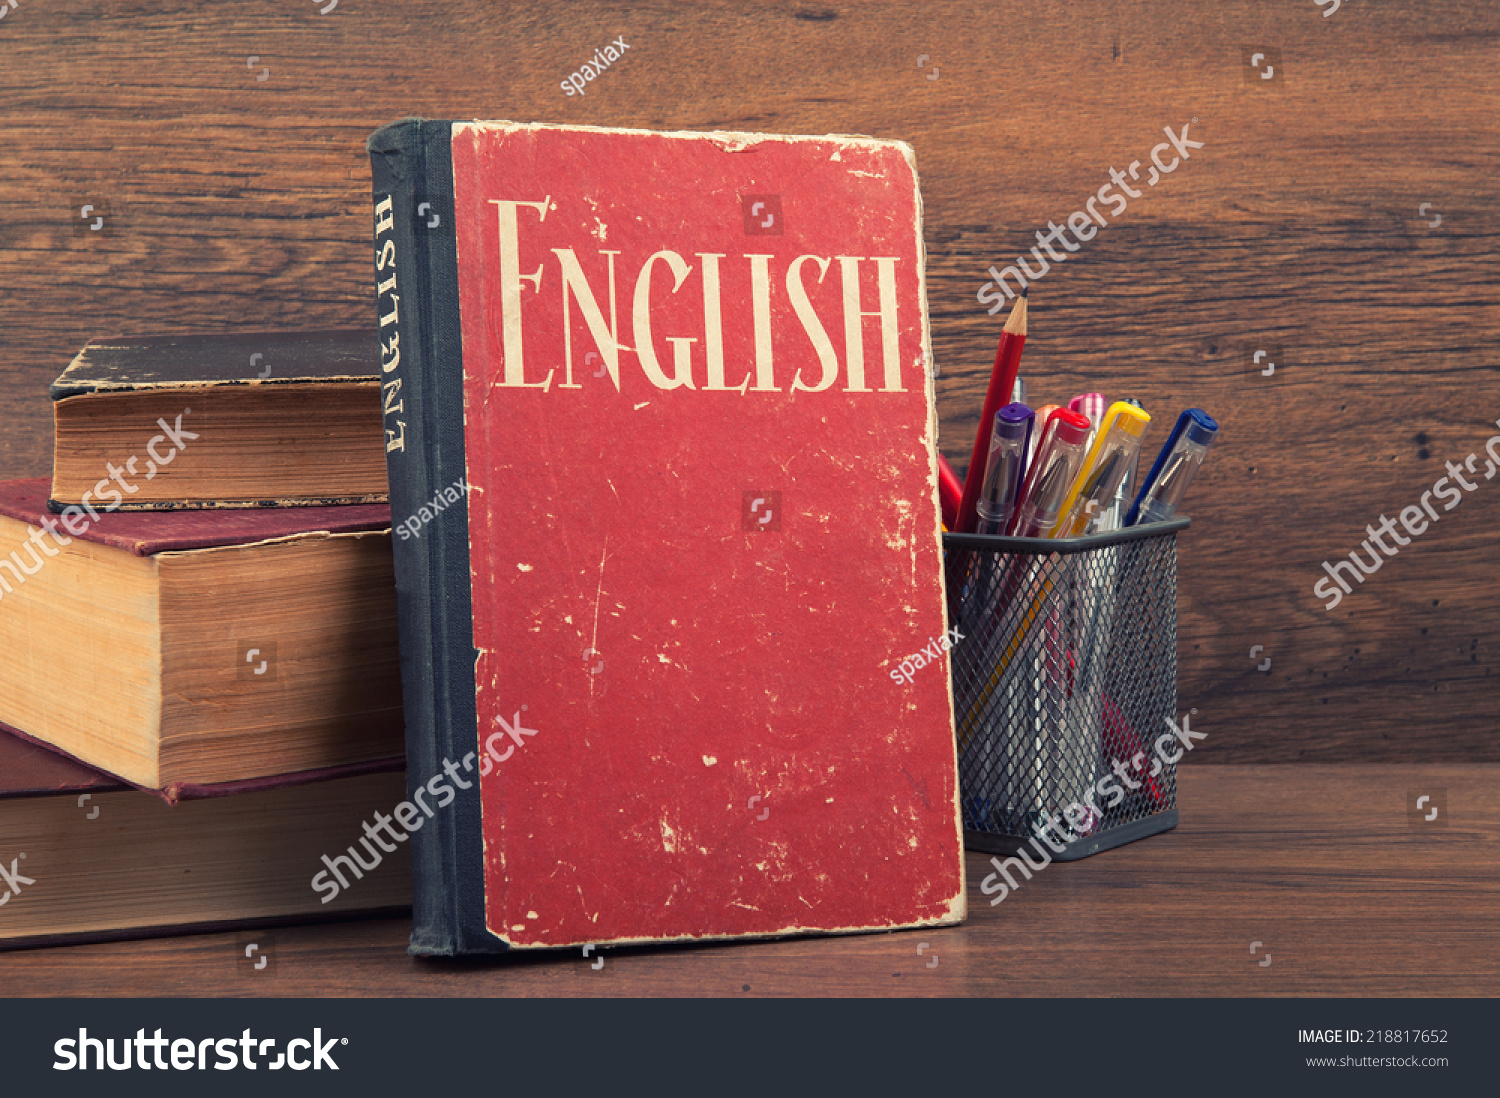 learning english concept. book on a wooden background #218817652